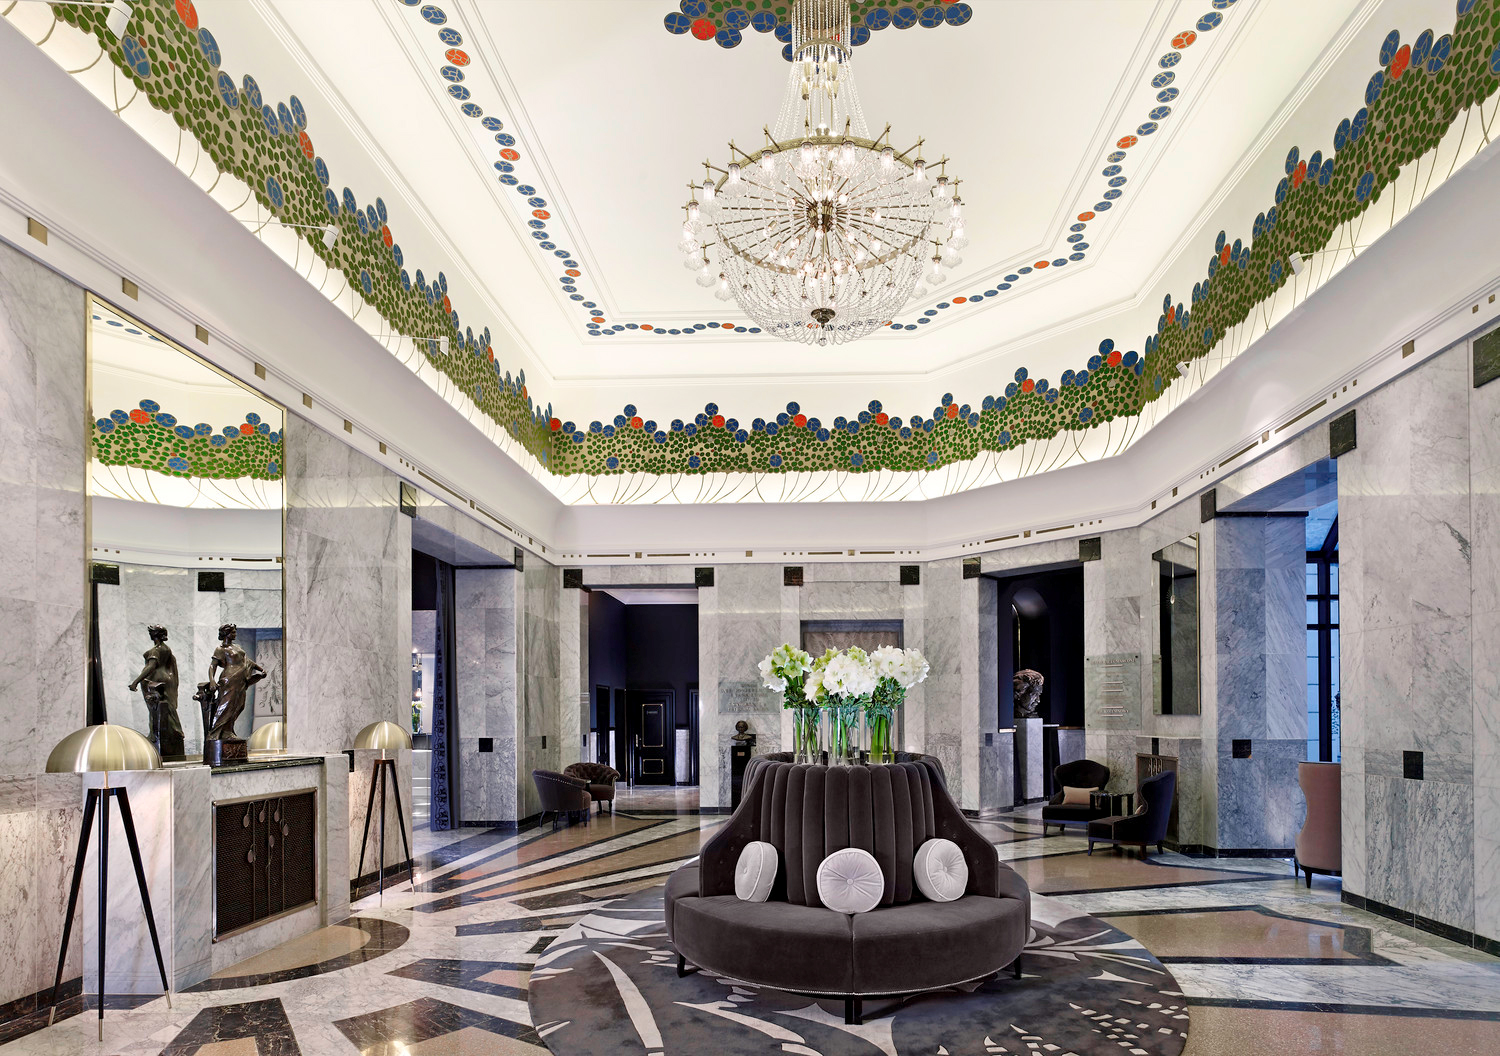 The luxury collection hotels resorts debuts in poland with the iconic hotel bristol in warsaw